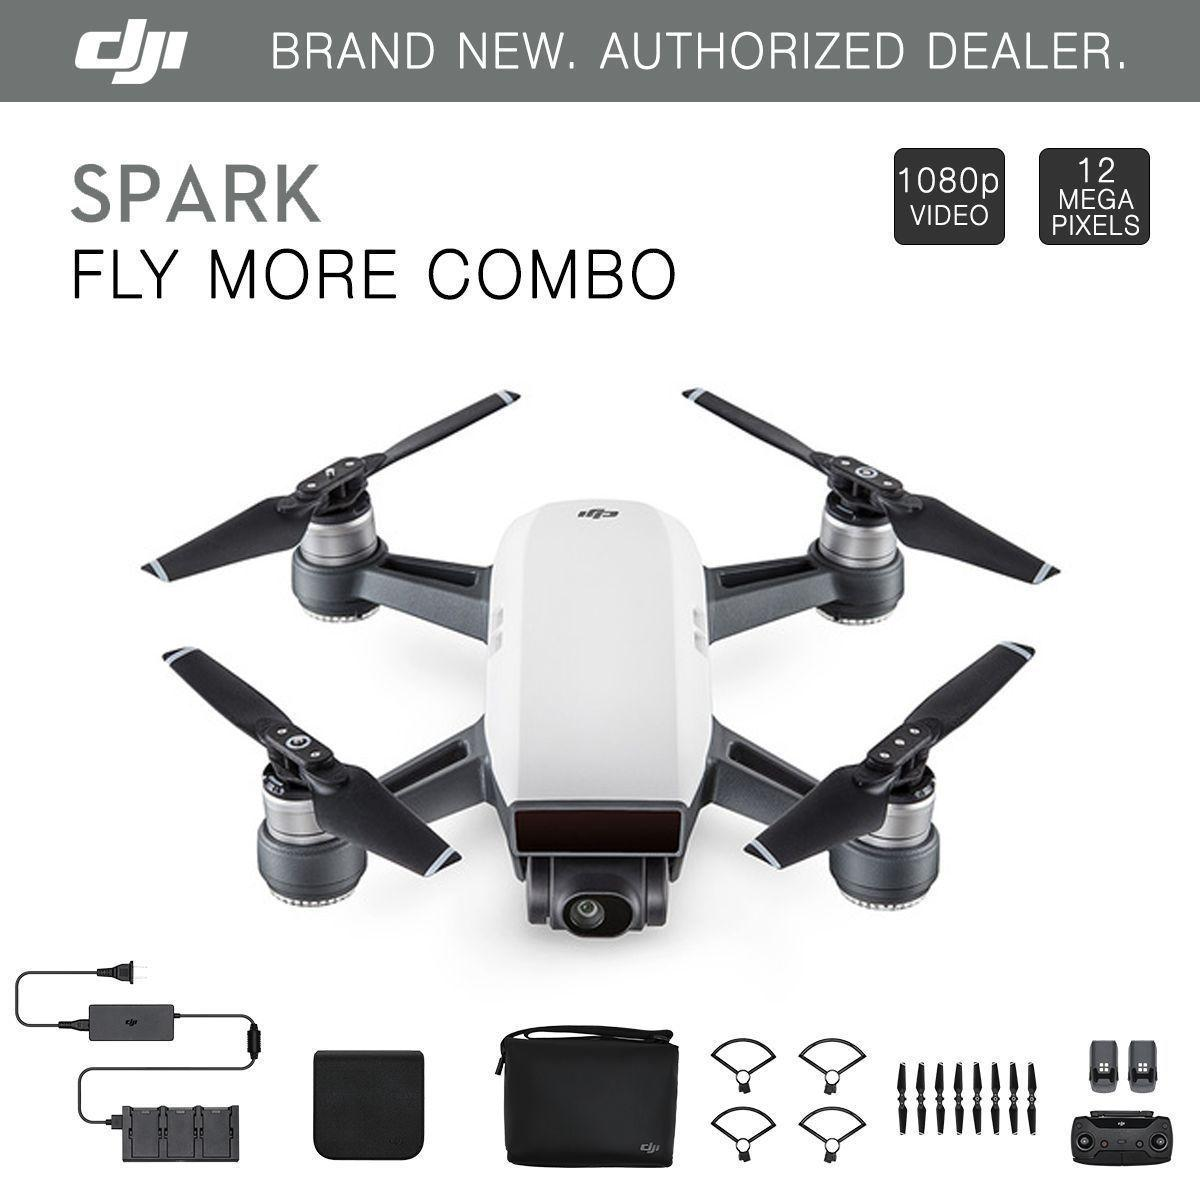 DJI Spark Fly More Combo Alpine White Quadcopter Drone 12MP 1080p